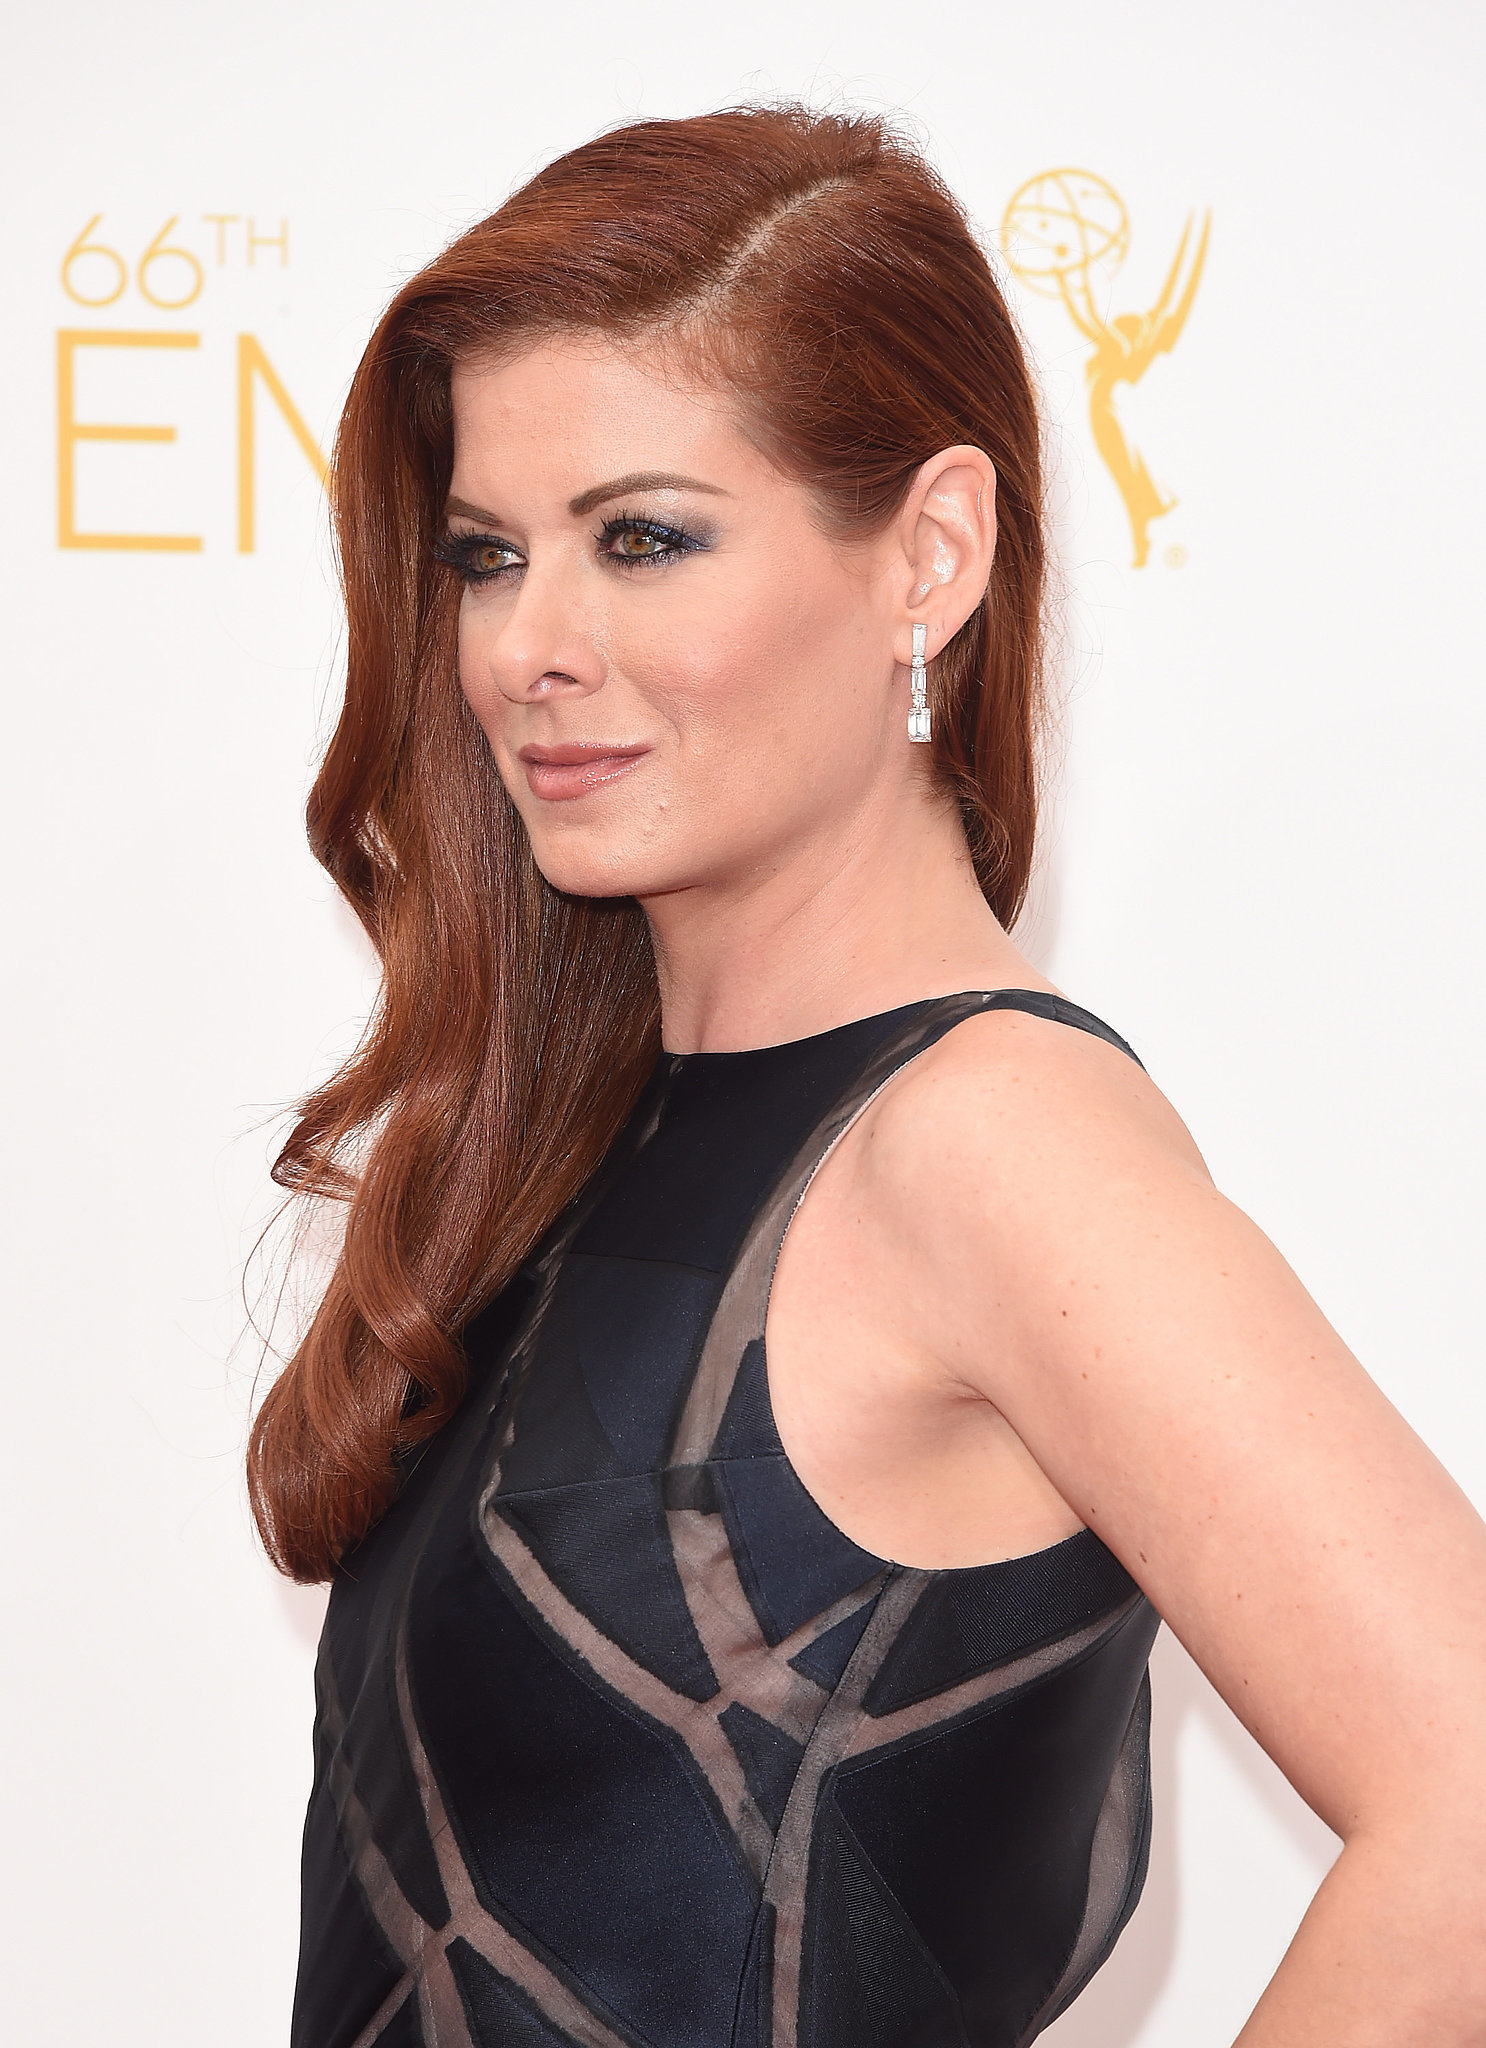 Debra Messing in Chopard Jewelry